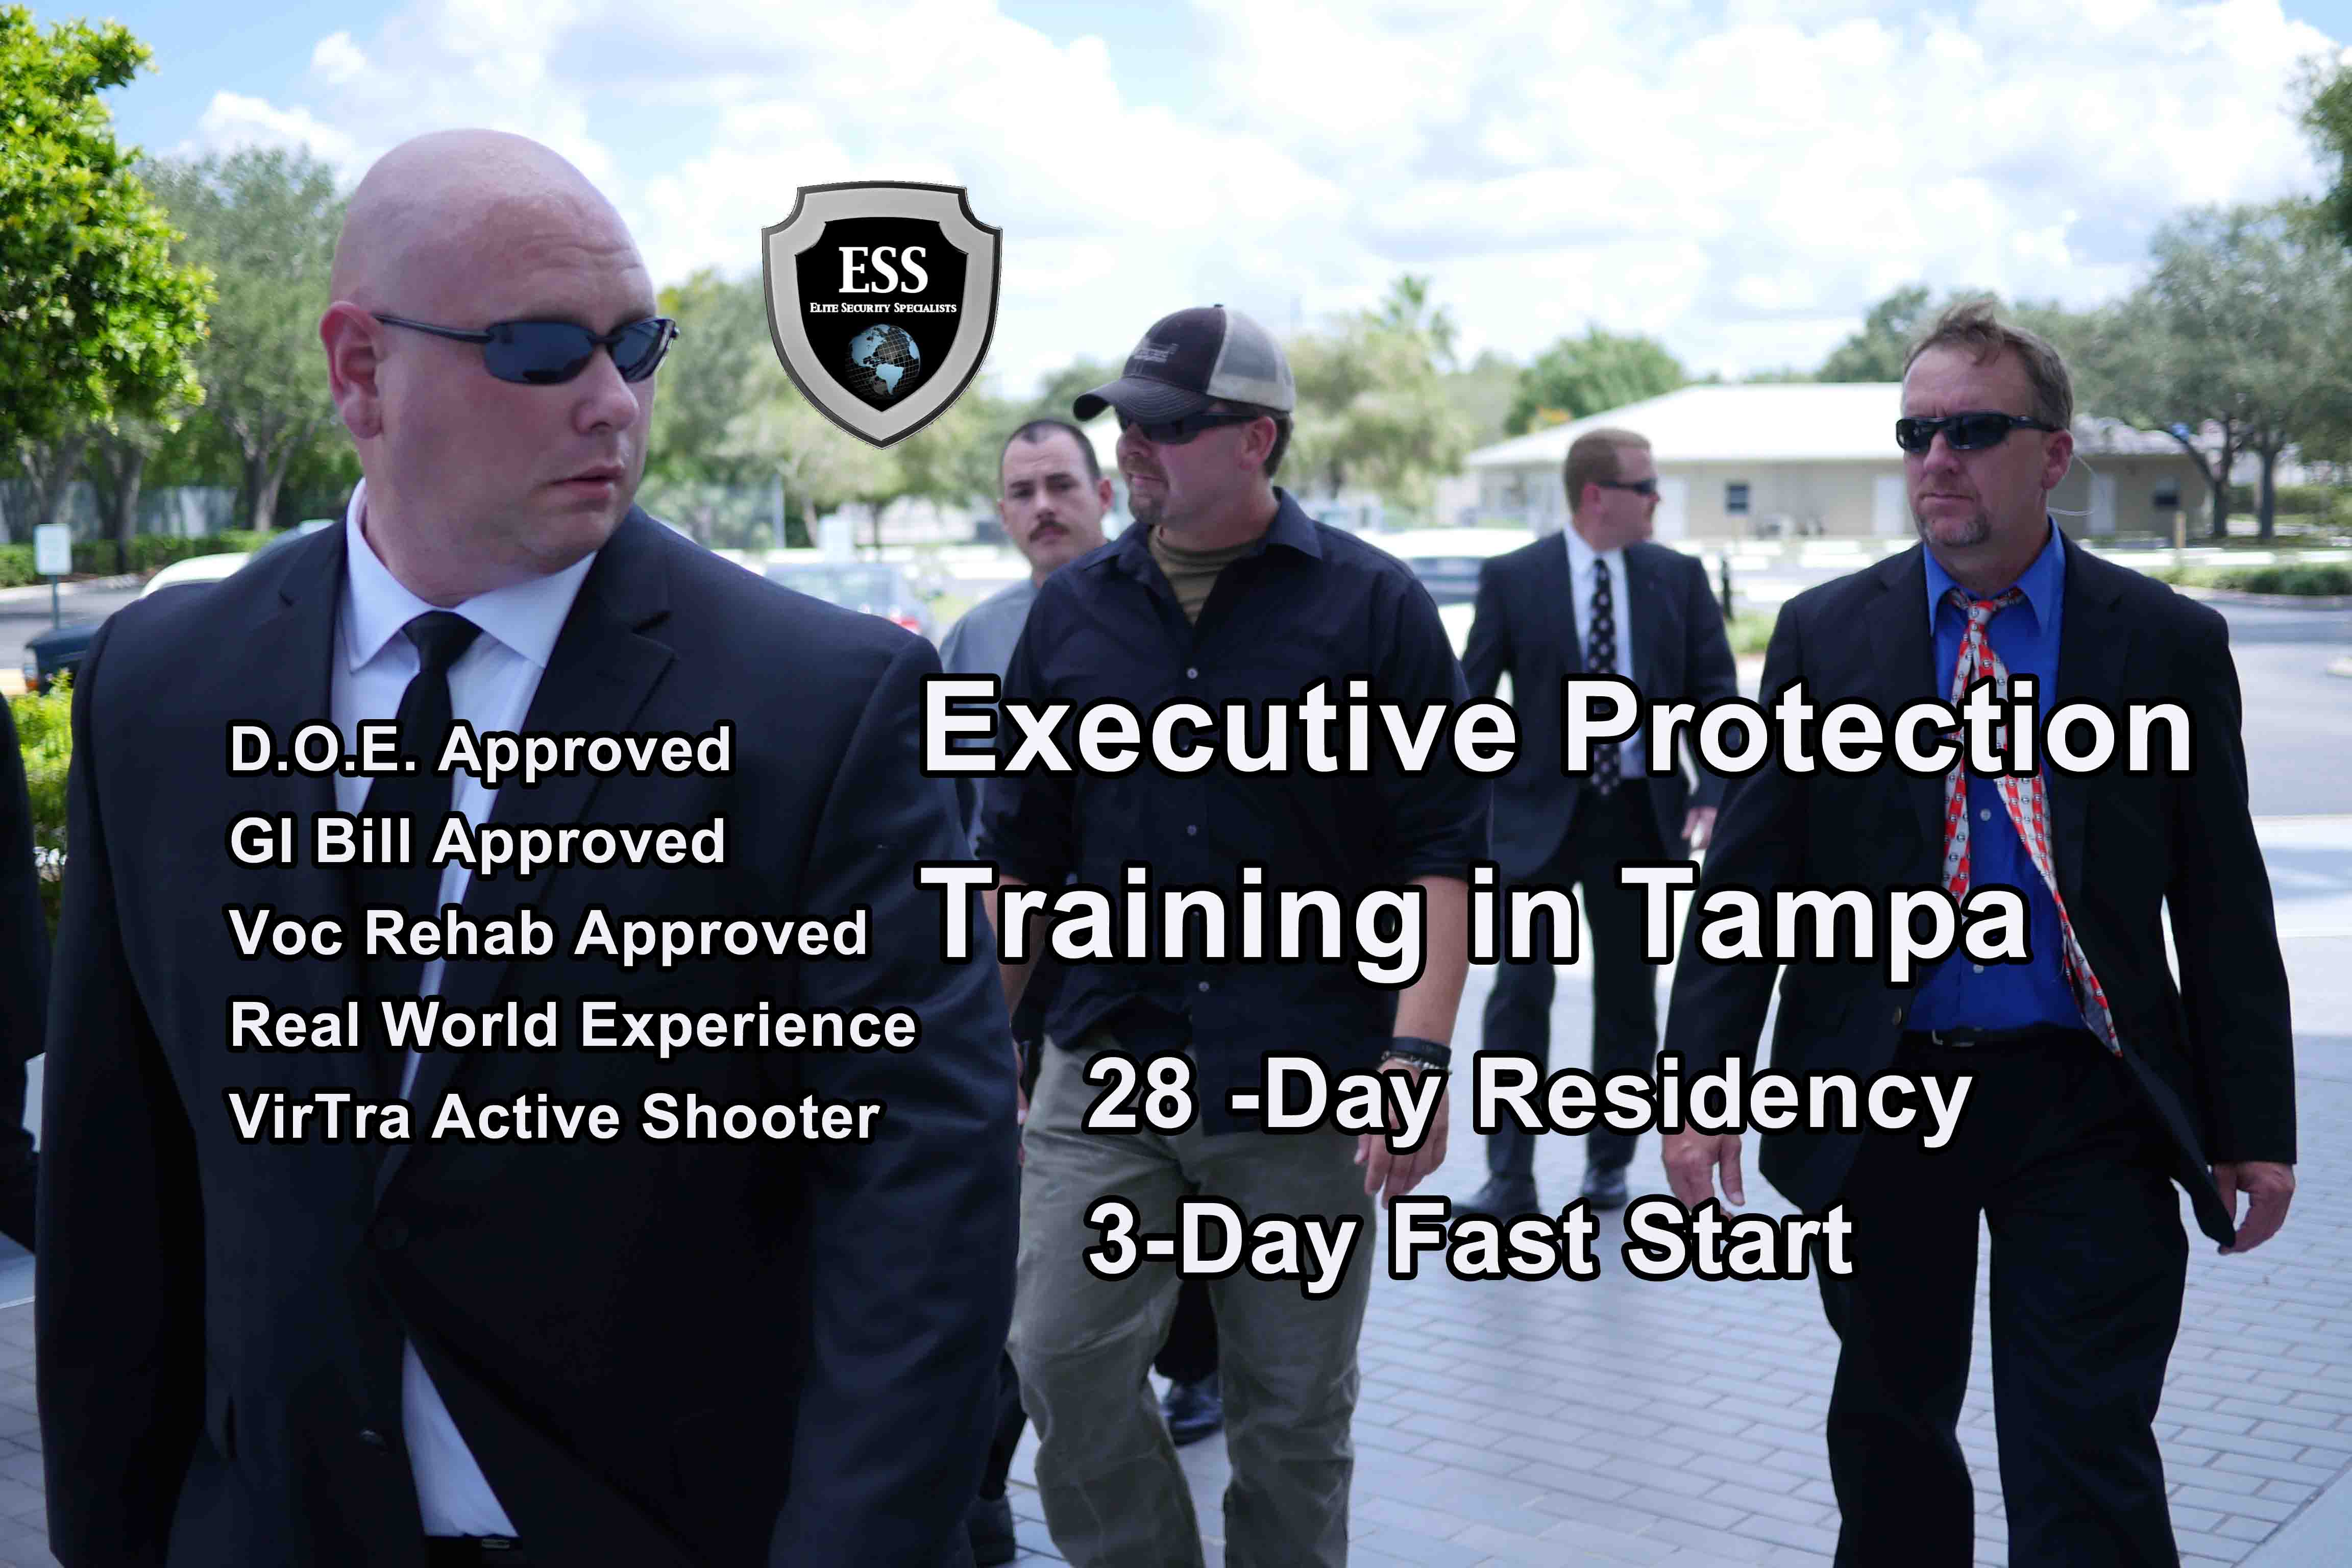 Best Executive Protection Training